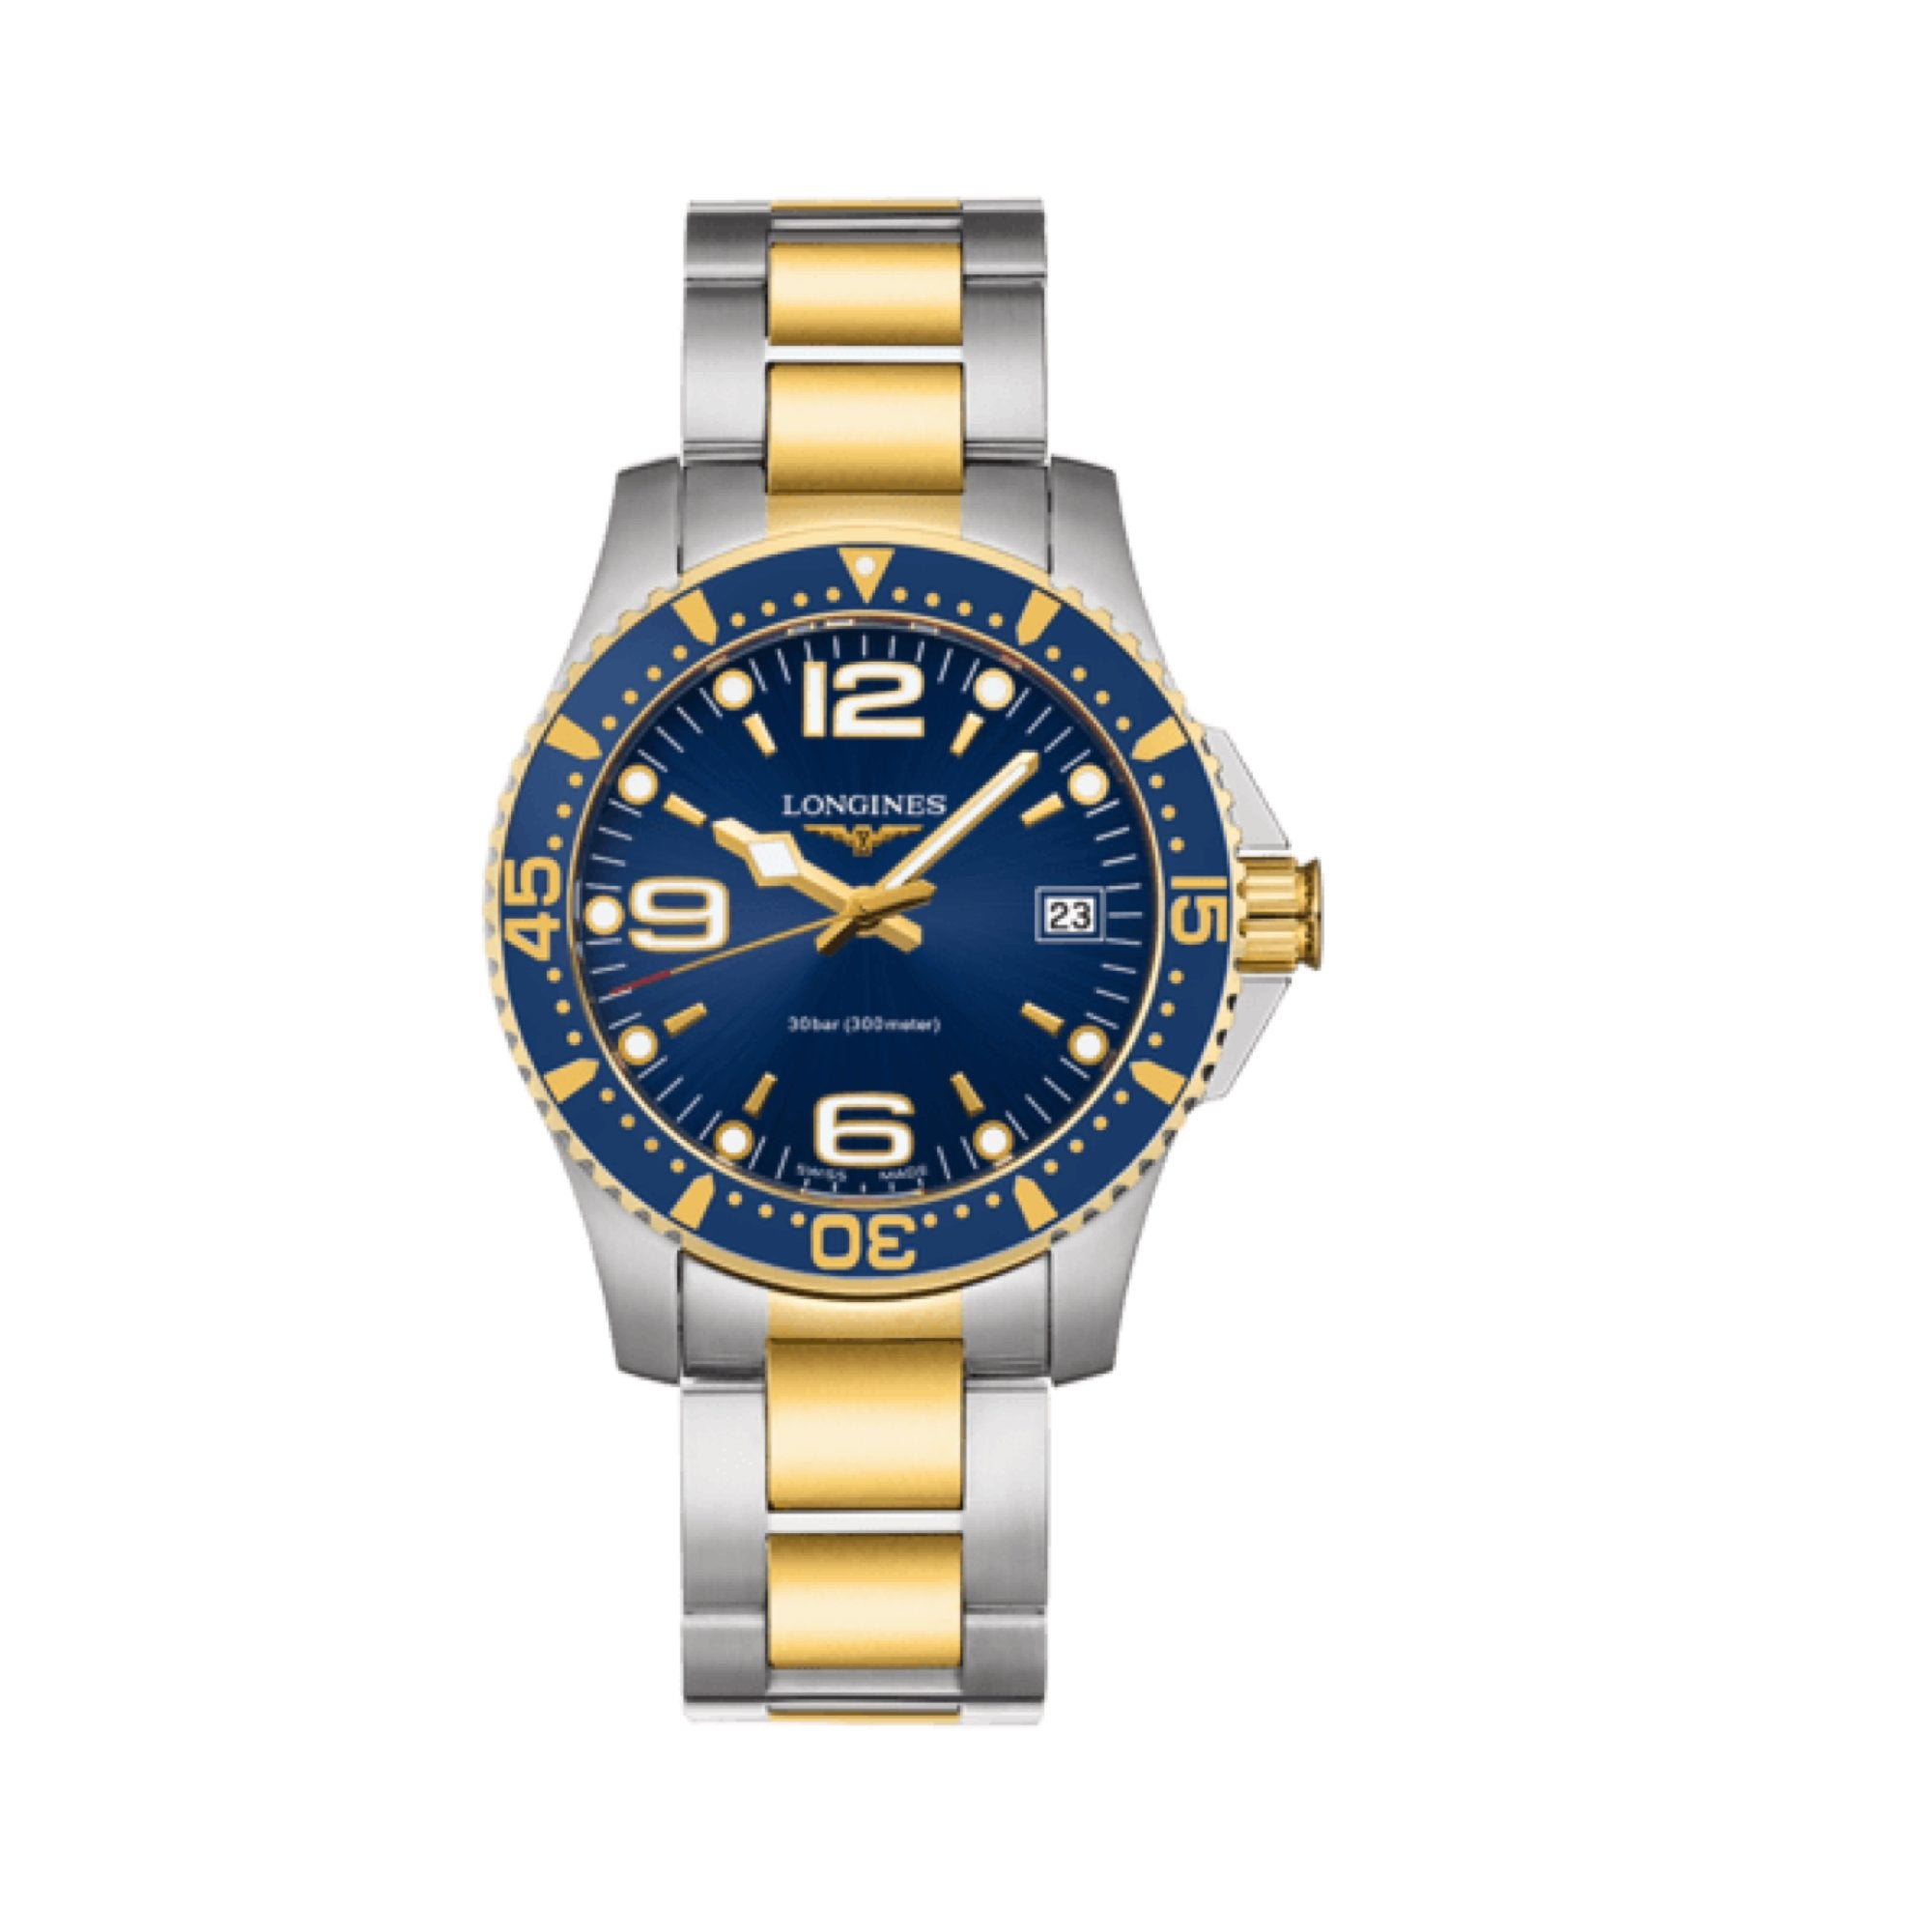 HYDROCONQUEST 34MM STAINLESS STEEL WATCH